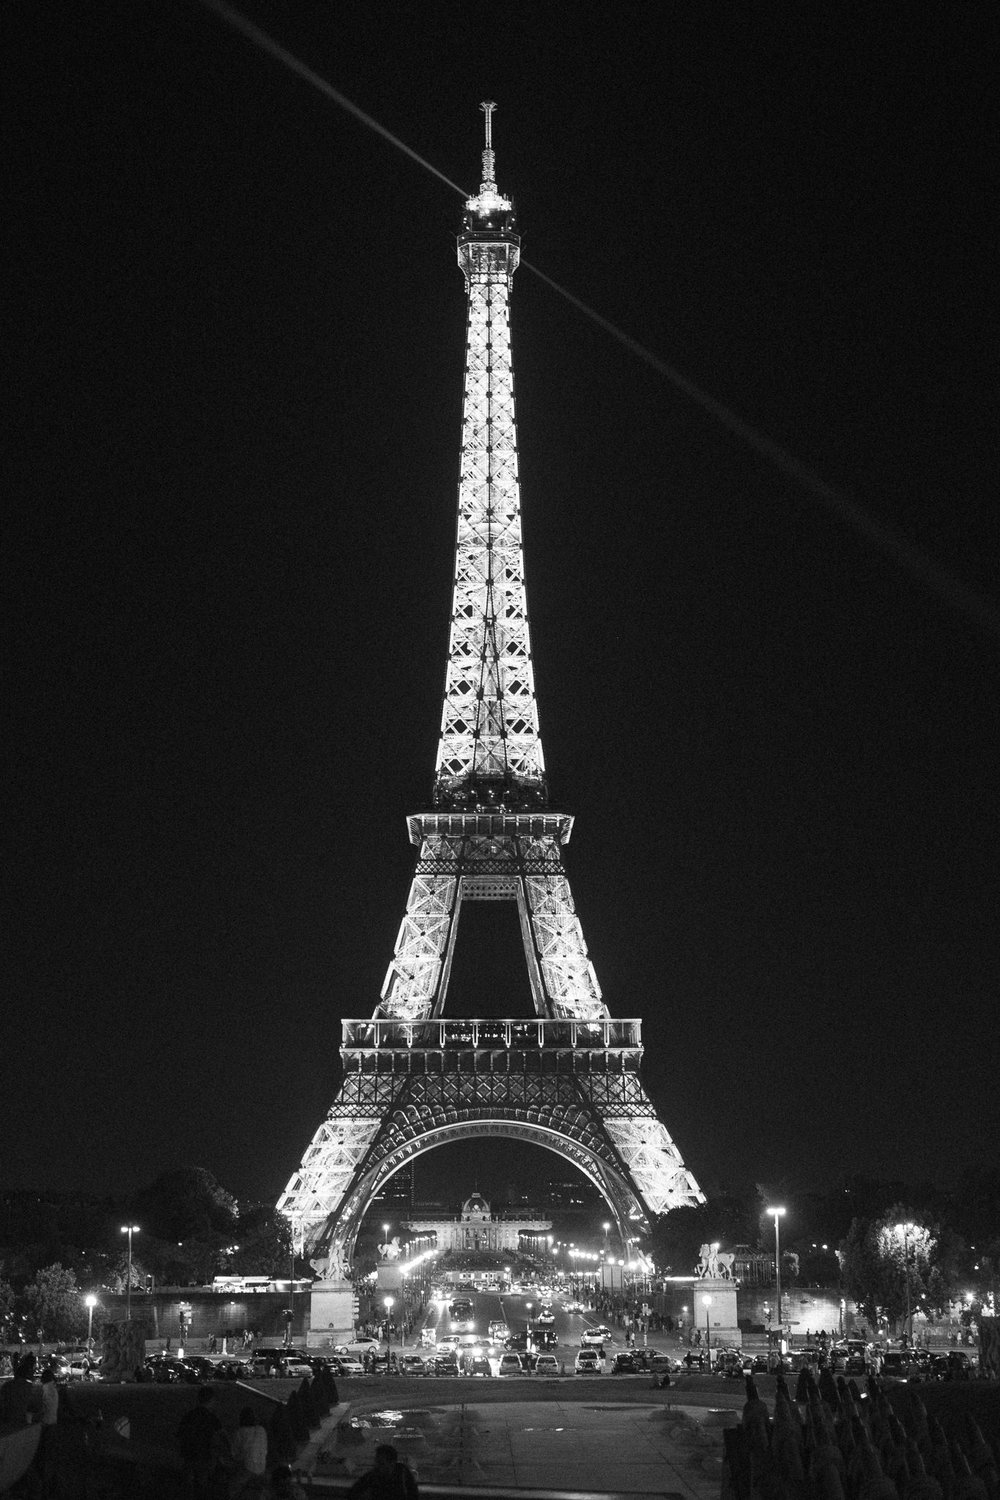 Black and white photo of eiffel tower lit up at night